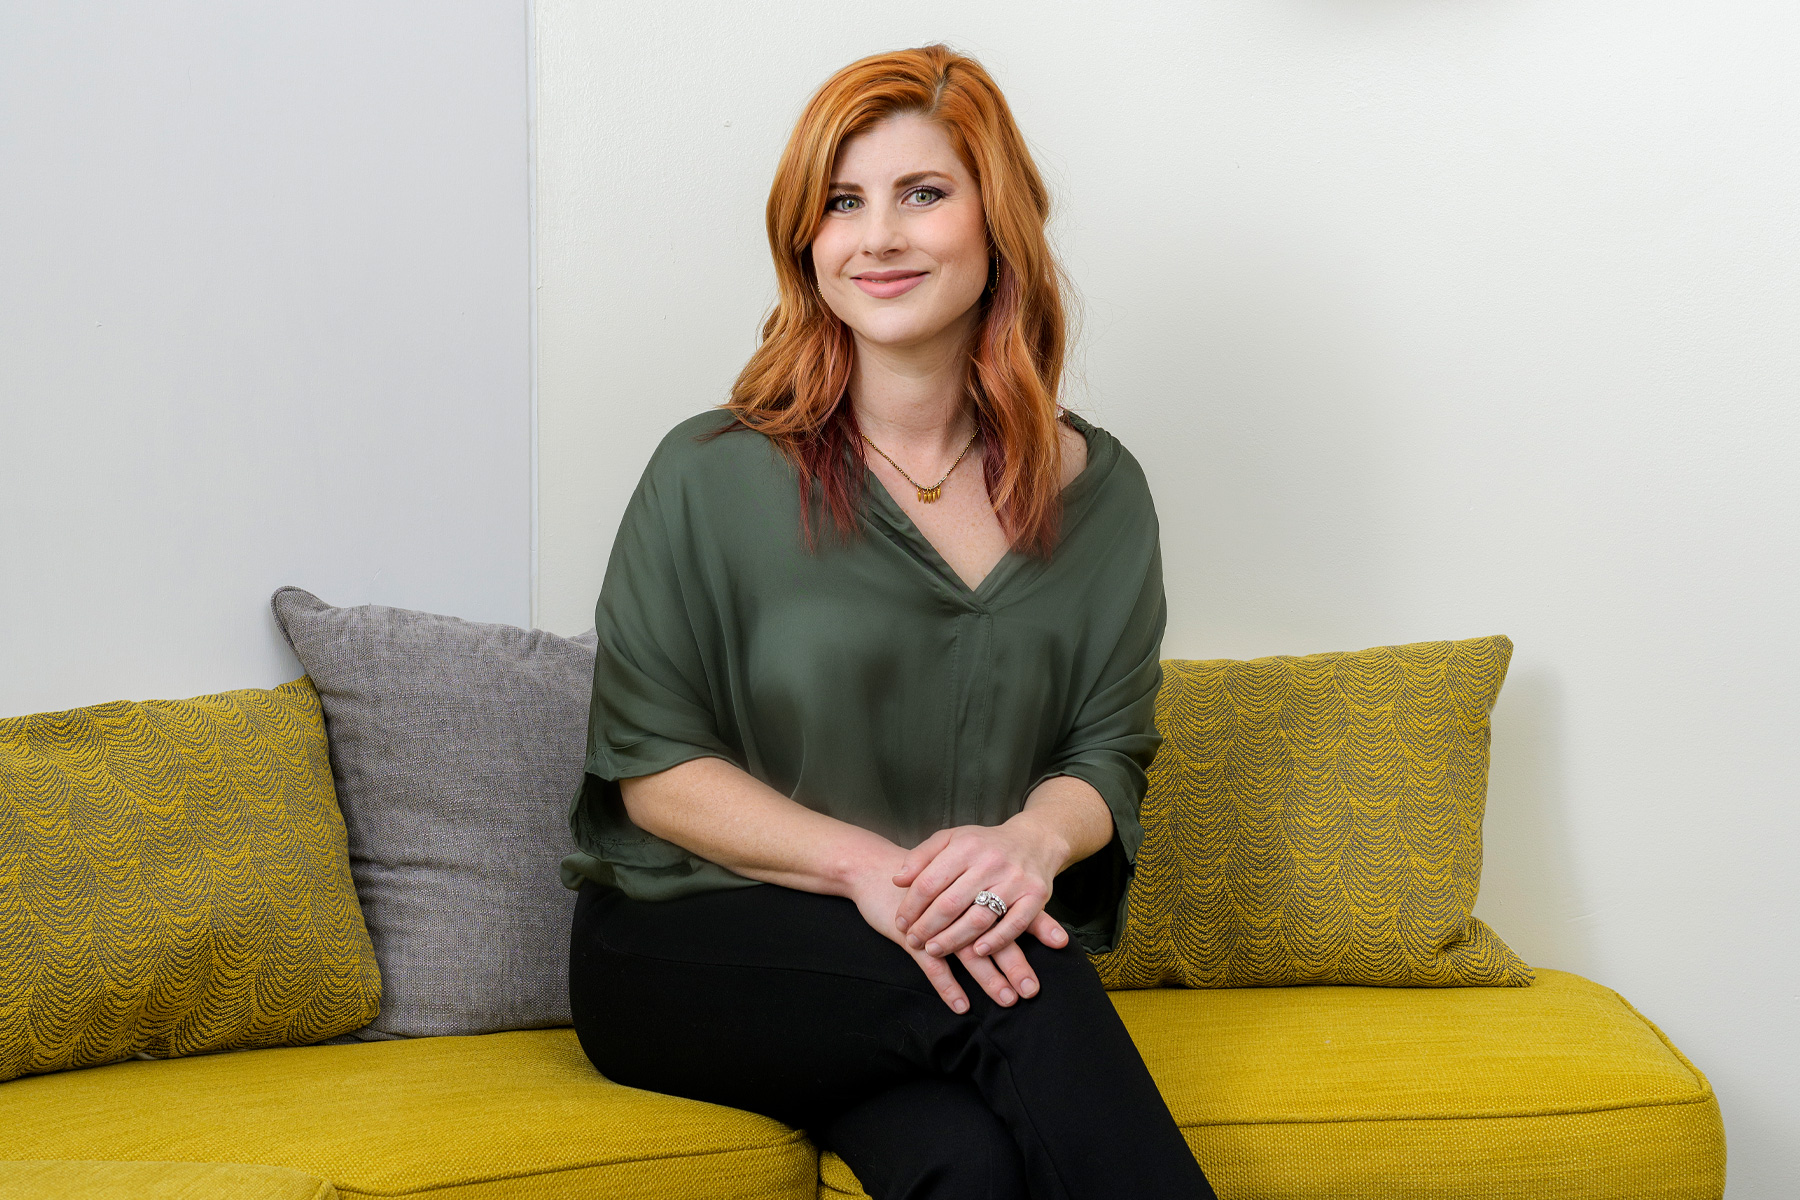 Healthcare Staffing Exec Sarah Snetzer Looks to Former First Lady Michelle Obama for Style Inspiration - D Magazine